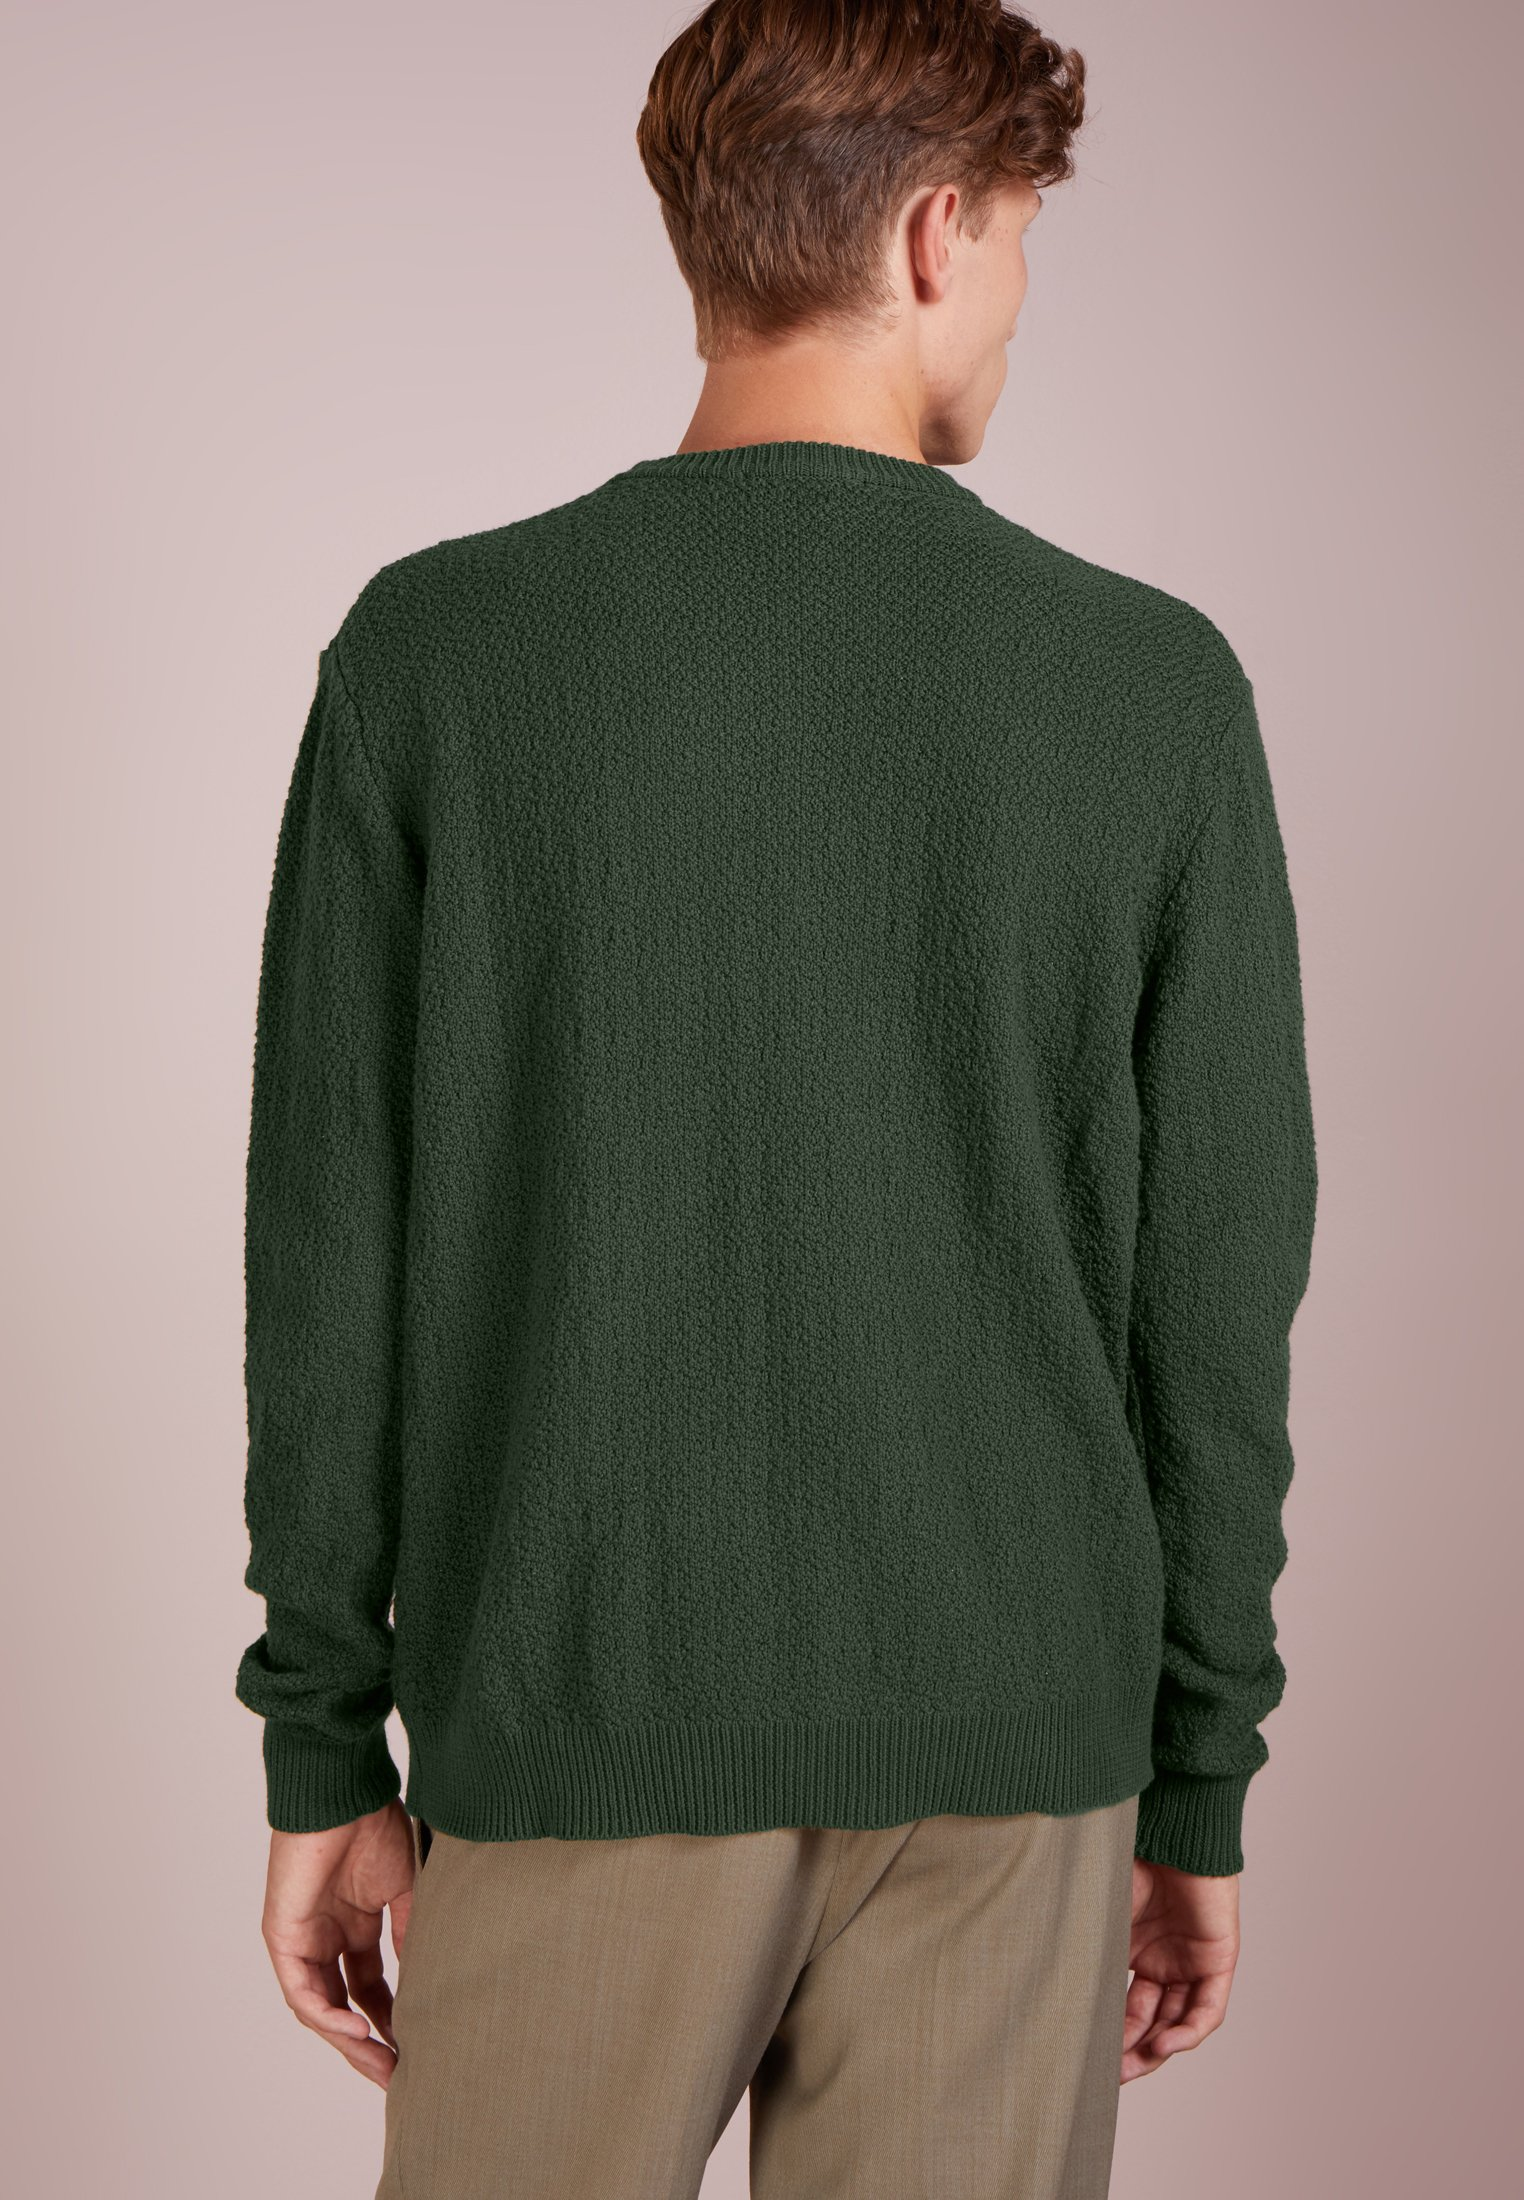 BrianPullover Bazaar Forest Bruuns Green Forest Bazaar Bazaar BrianPullover Bruuns Green Bruuns BrianPullover 9IHED2